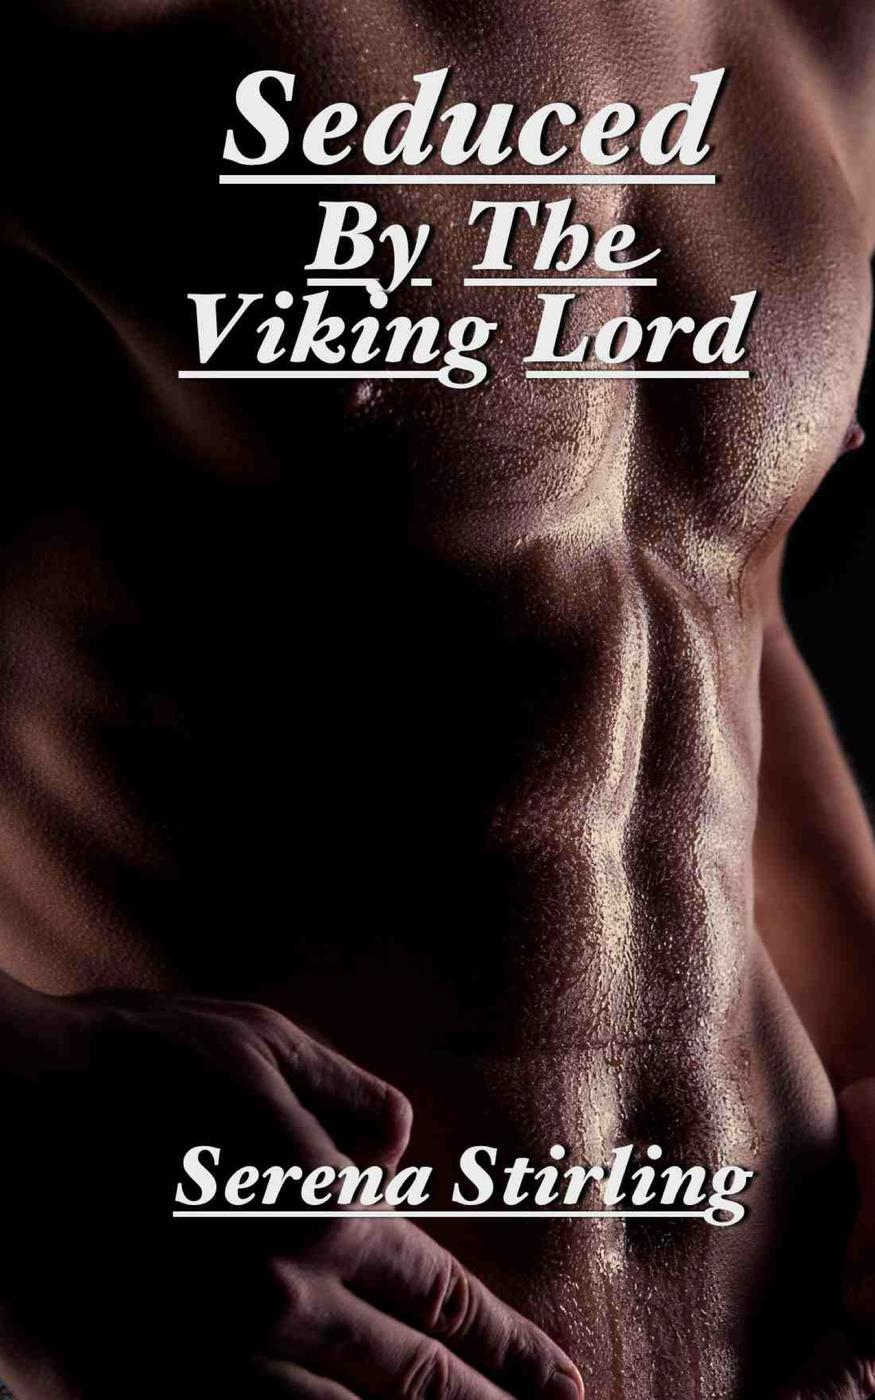 Seduced By The Viking Lord (Viking erotica)